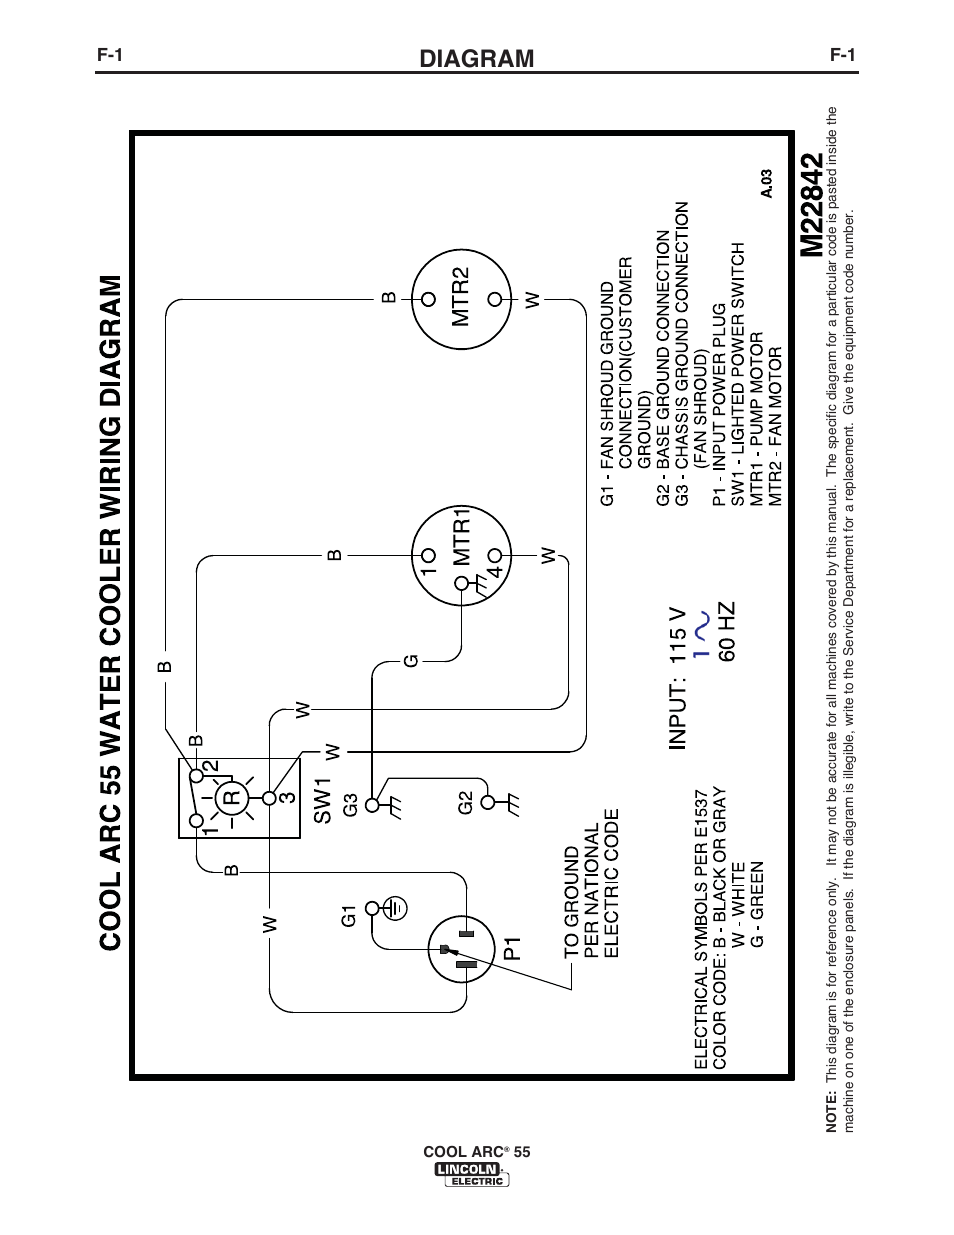 Water Cooler Wiring Diagram Electrical Diagrams For Walk In Lincoln Electric Im10117 Cool Arc 55 User